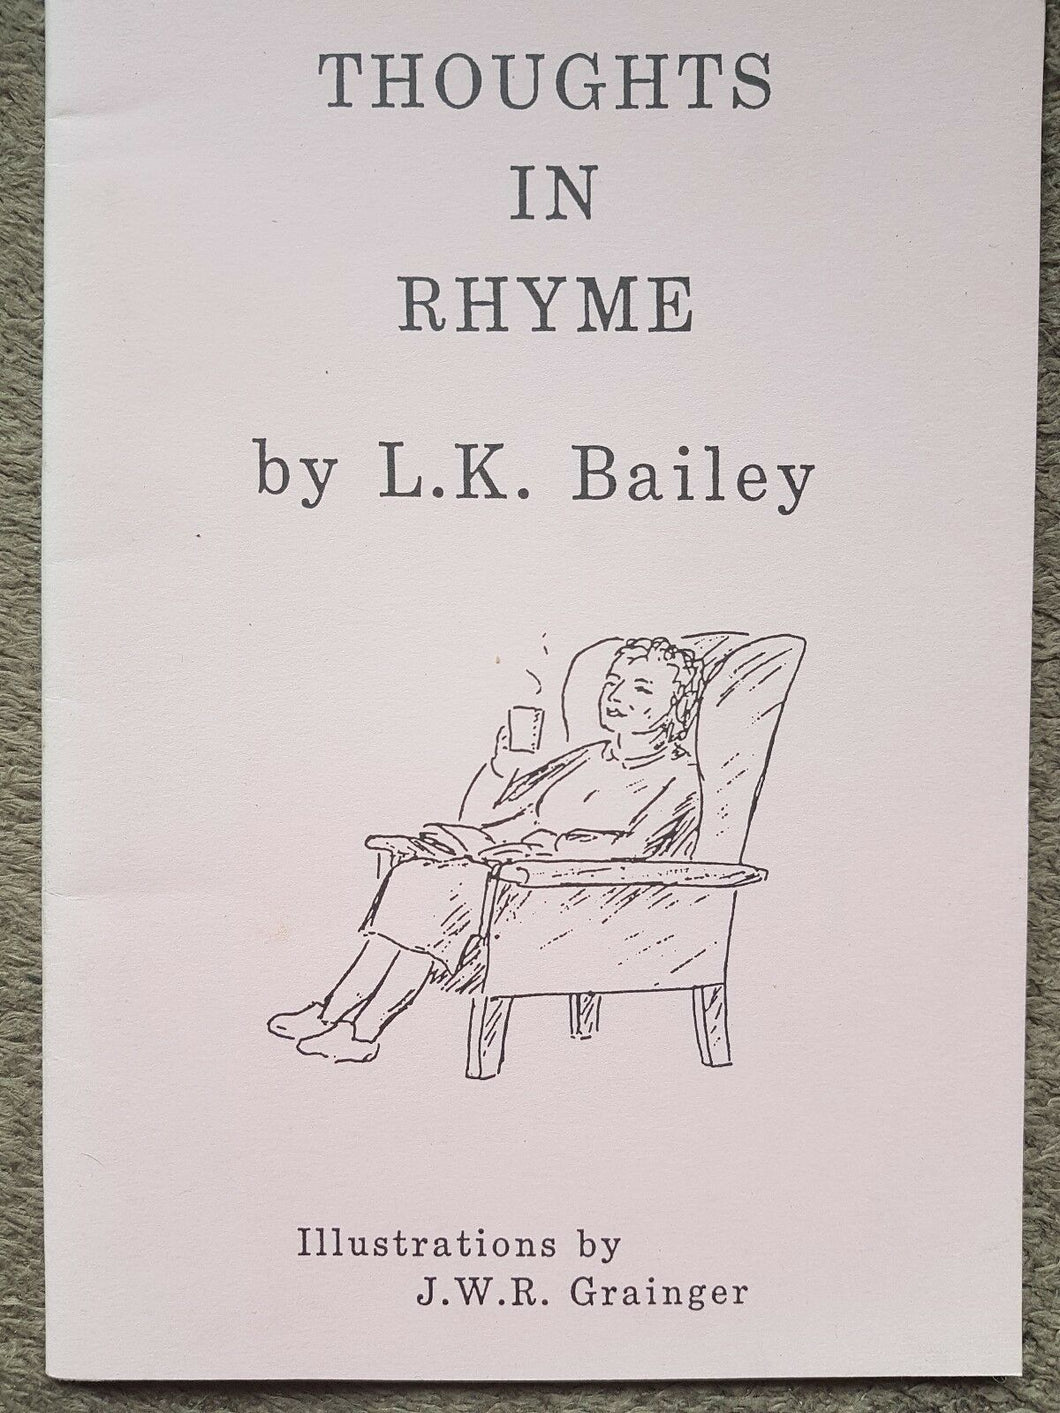 Thoughts in rhyme by LK Bailey illustrations by J W R Grainger 34 page